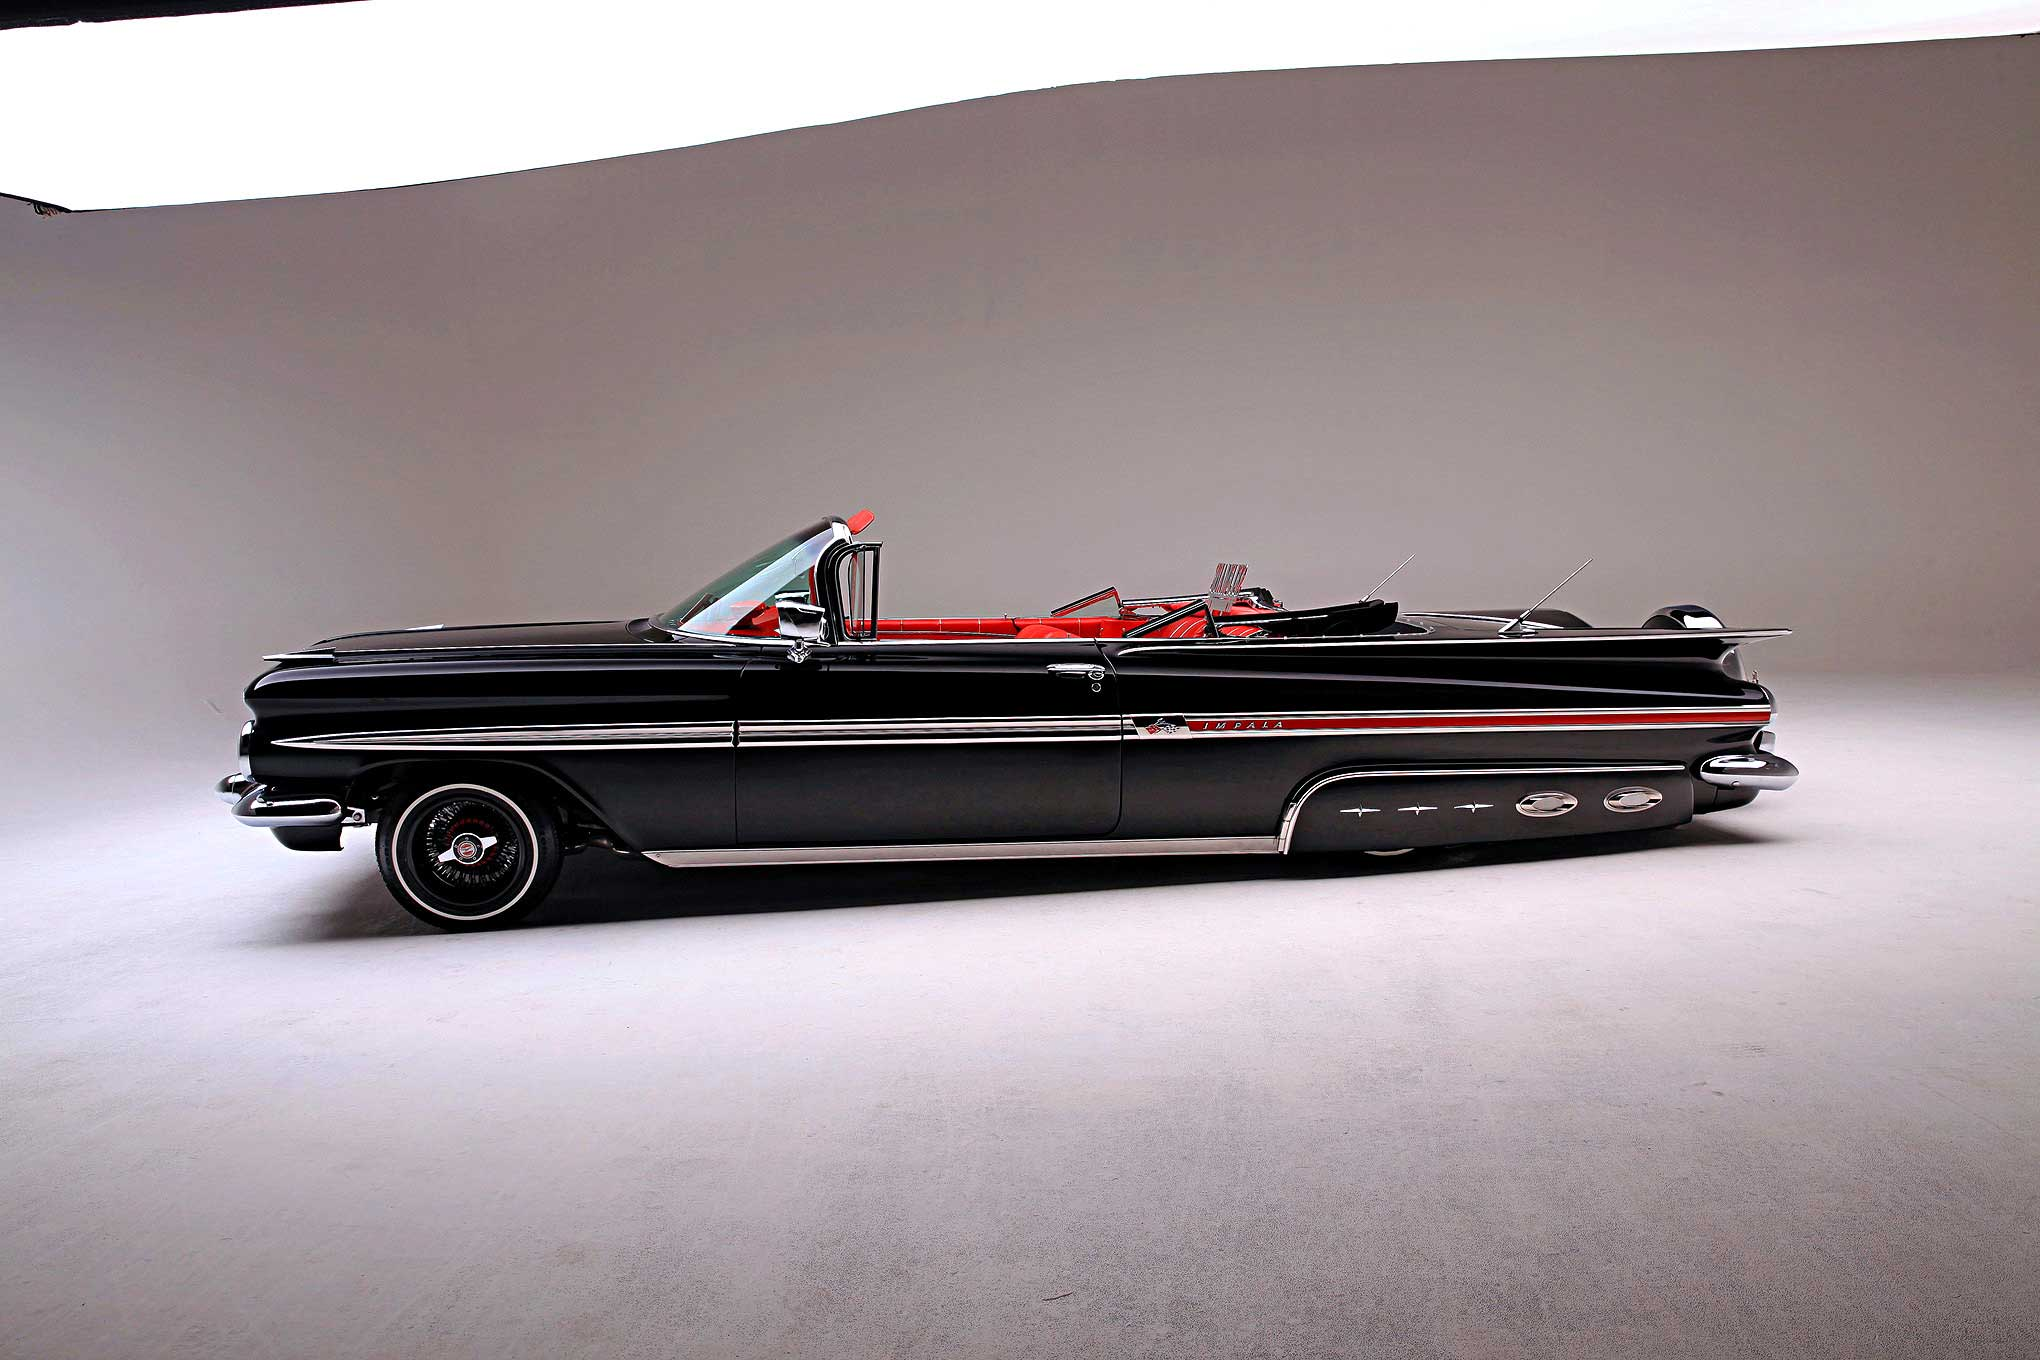 1959 Chevrolet Impala Convertible The Mothership 1954 Chevy Lowrider 44 83